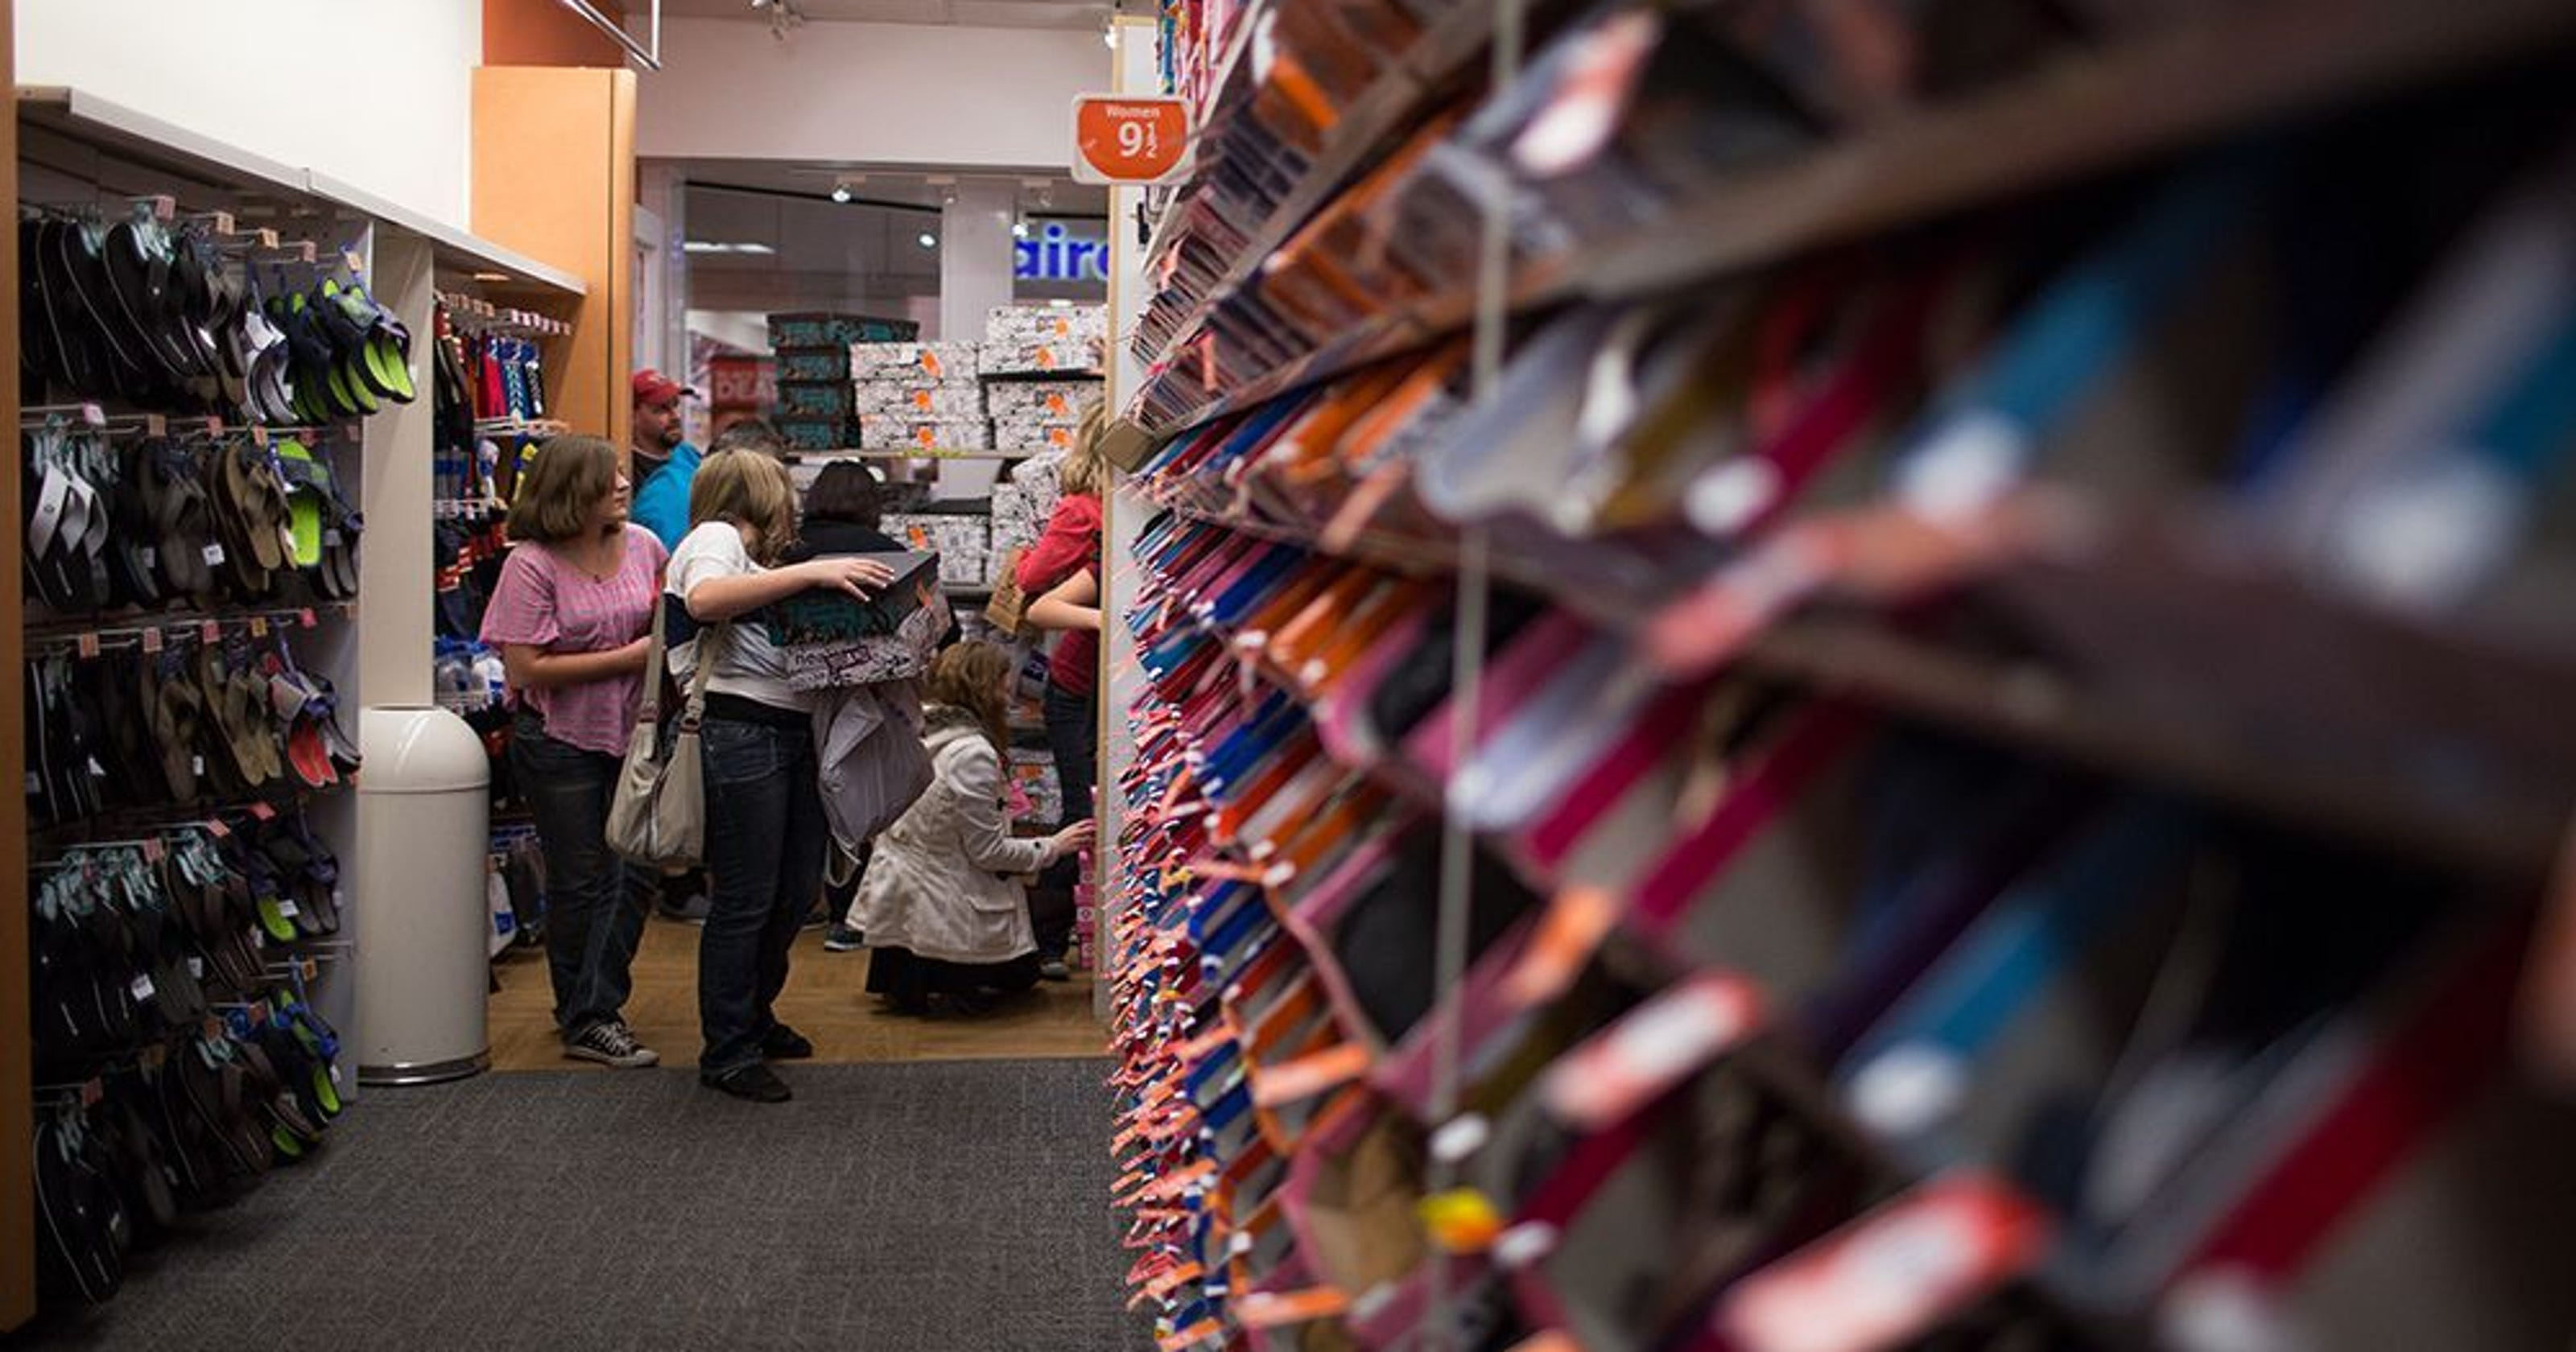 d0cc766fd Payless ShoeSource could close another 400 stores in bankruptcy